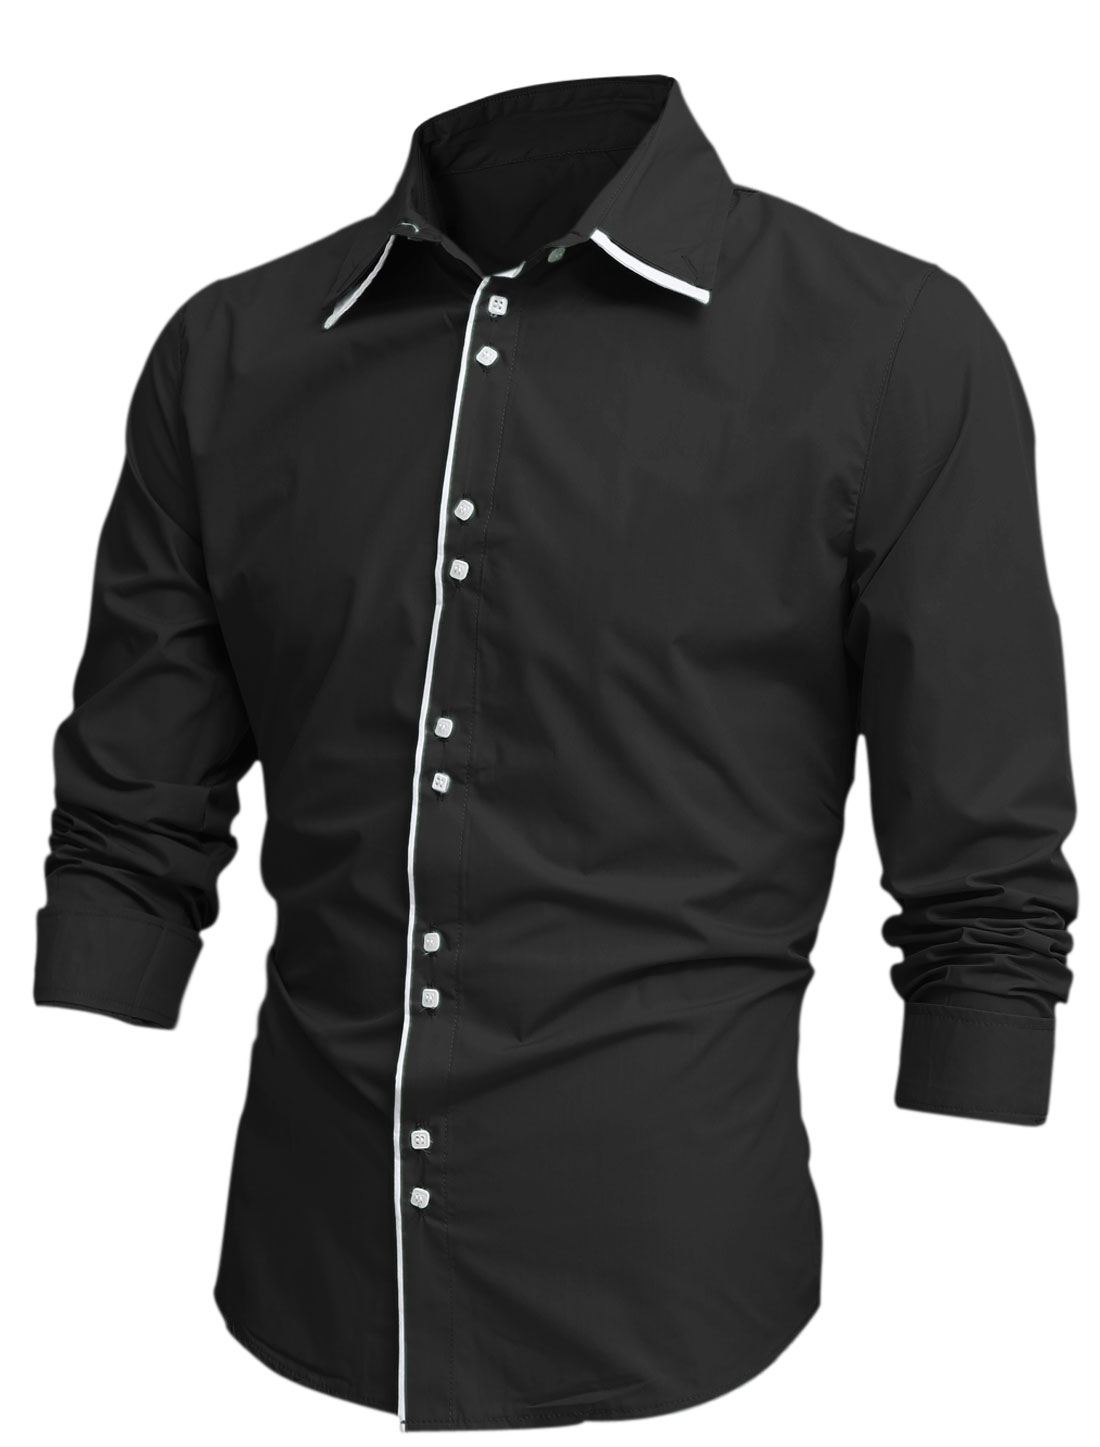 Men Layered Point Collar Long Sleeve Single Breasted Shirt Black M